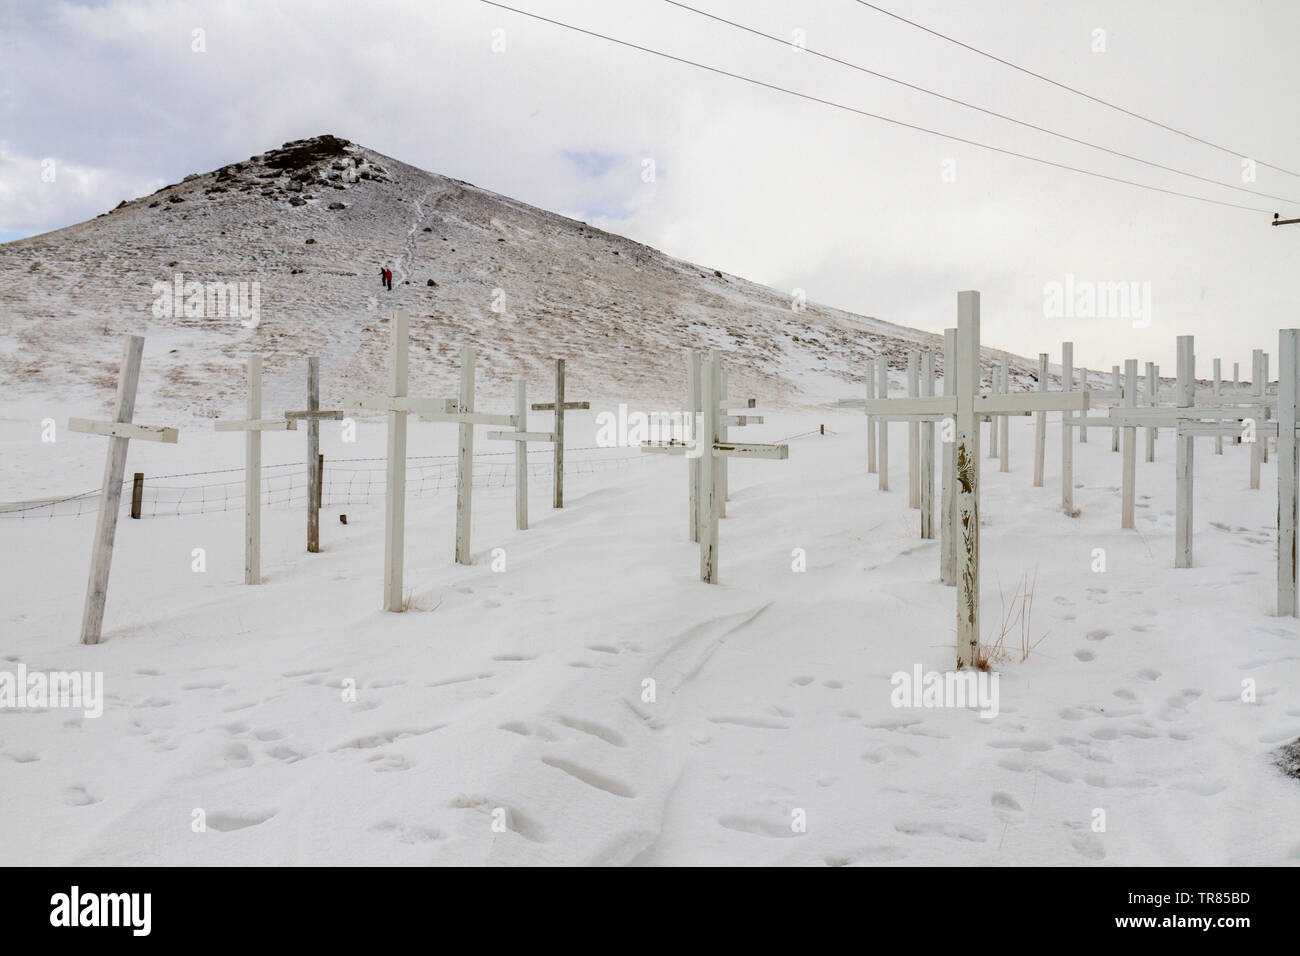 A memorial of crosses by Hannes Kristmundsson, to remember the victims of road accidents, at Kögunarhóll, near Selfoss, Iceland. - Stock Image